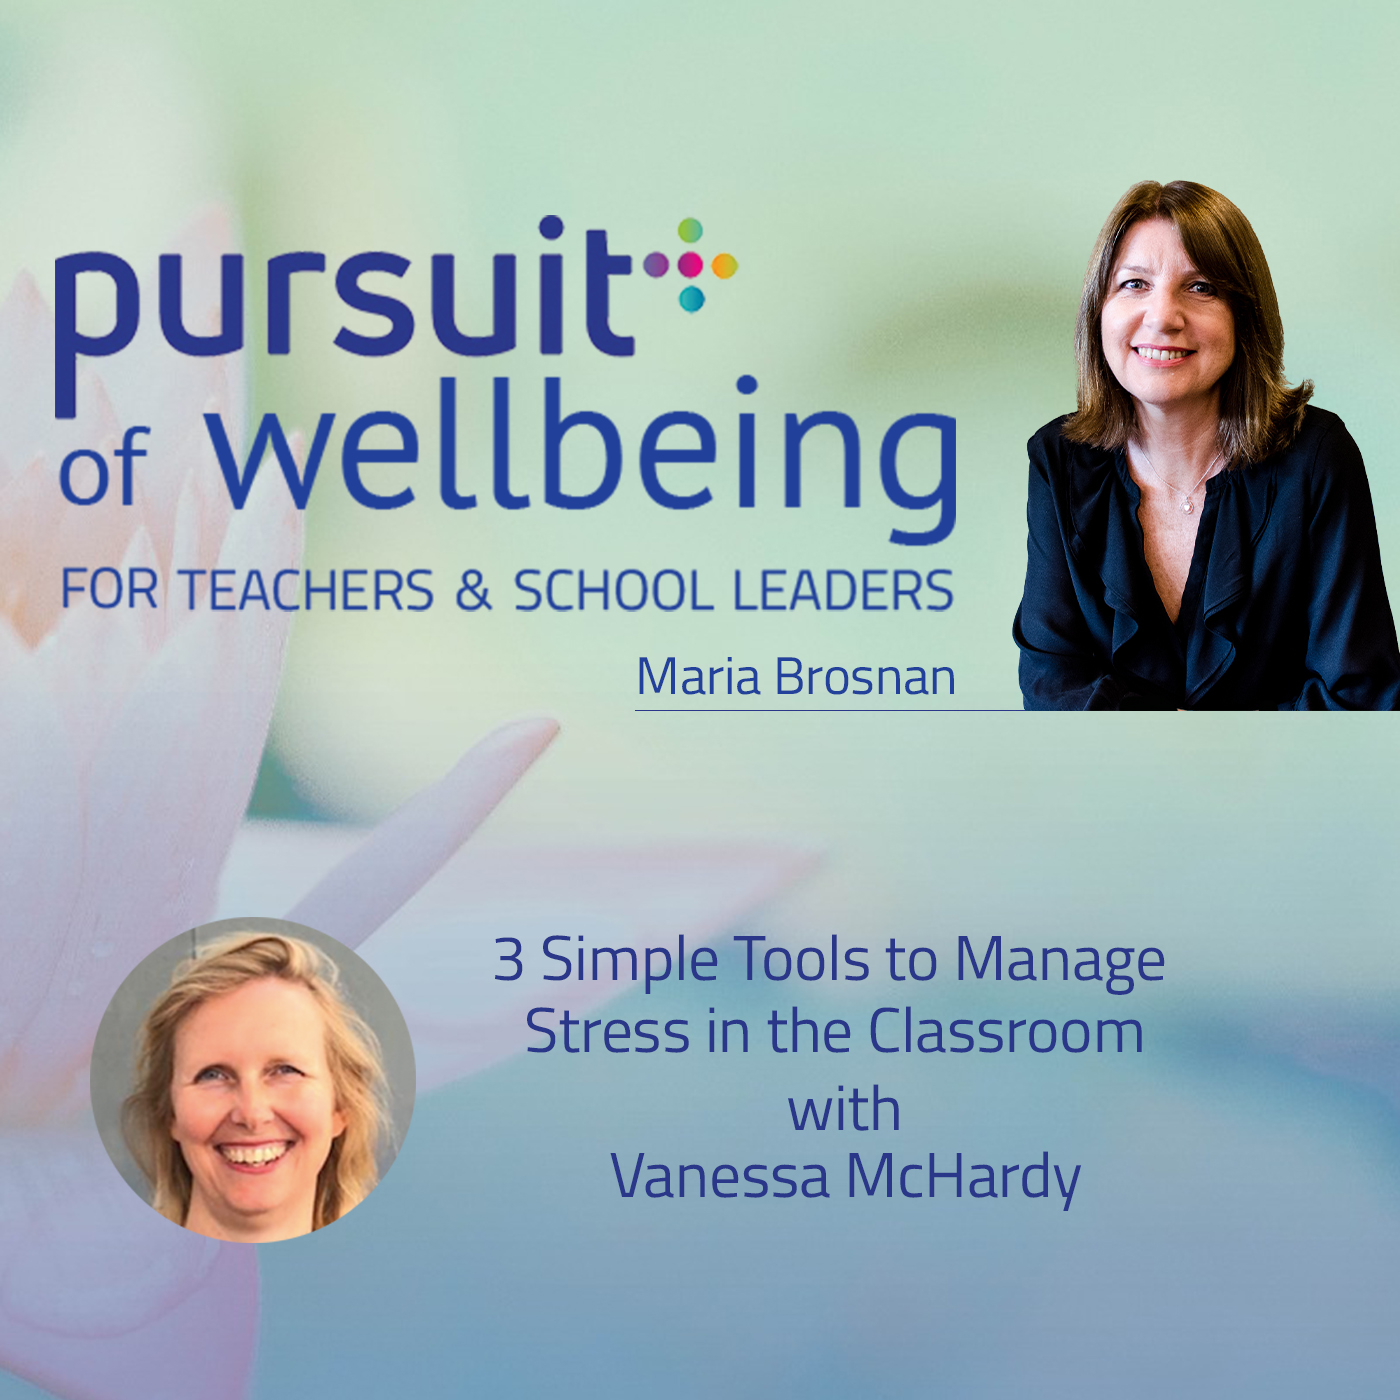 3 simple tools to manage stress in the classroom, with Vanessa McHardy